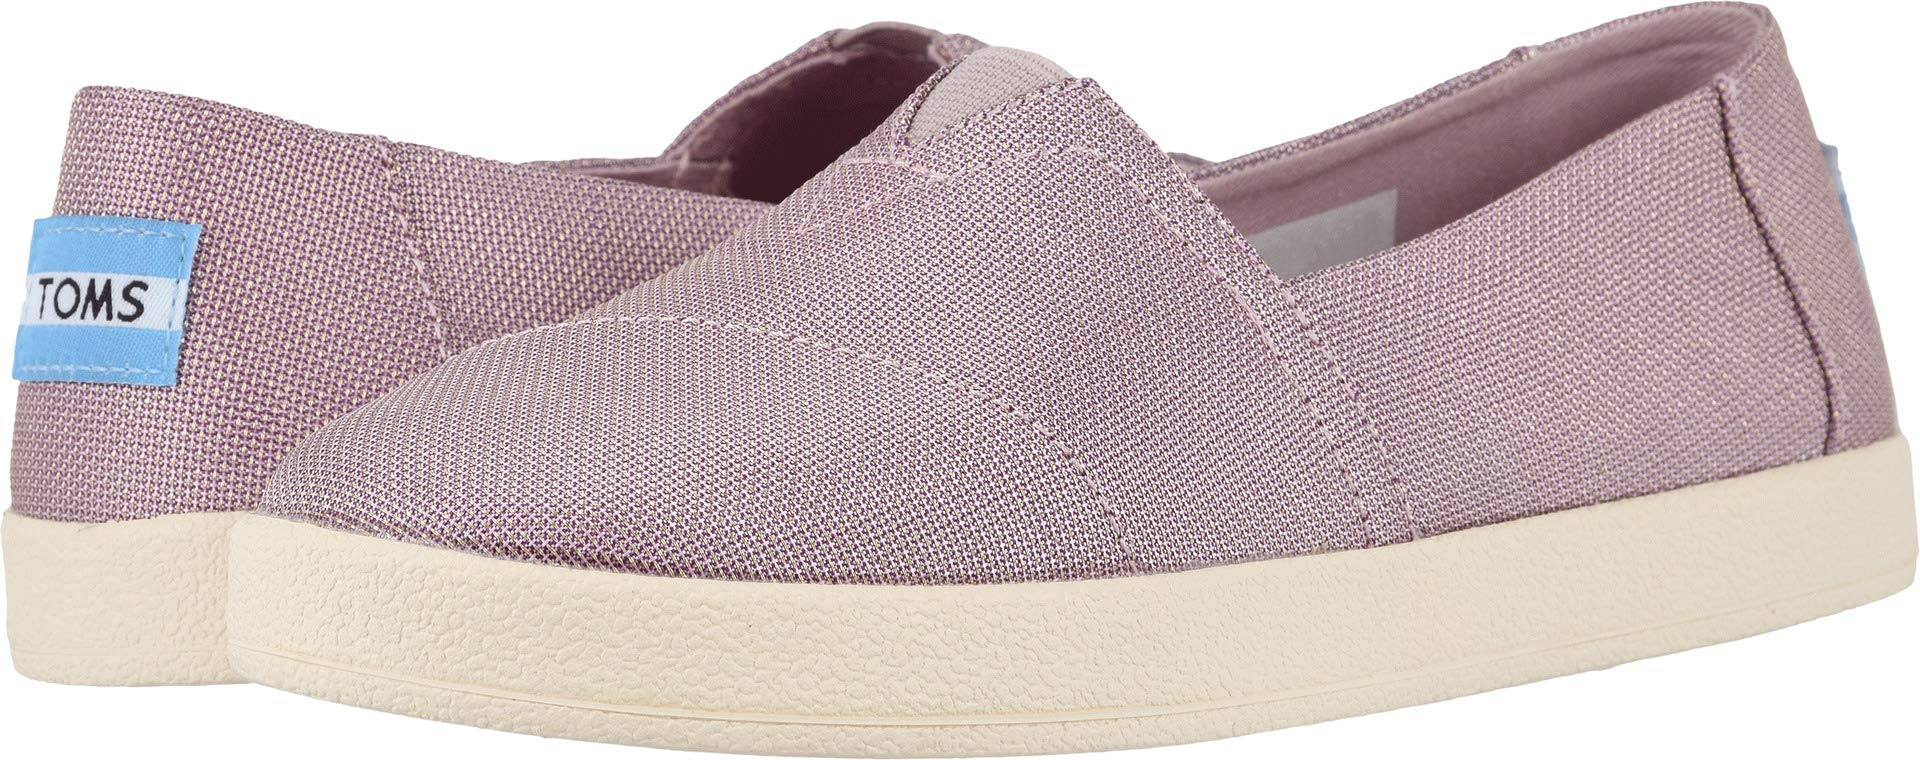 a2a15af3e30 Galleon - TOMS Women s Avalon Burnished Lilac Shiny Woven 5.5 B US